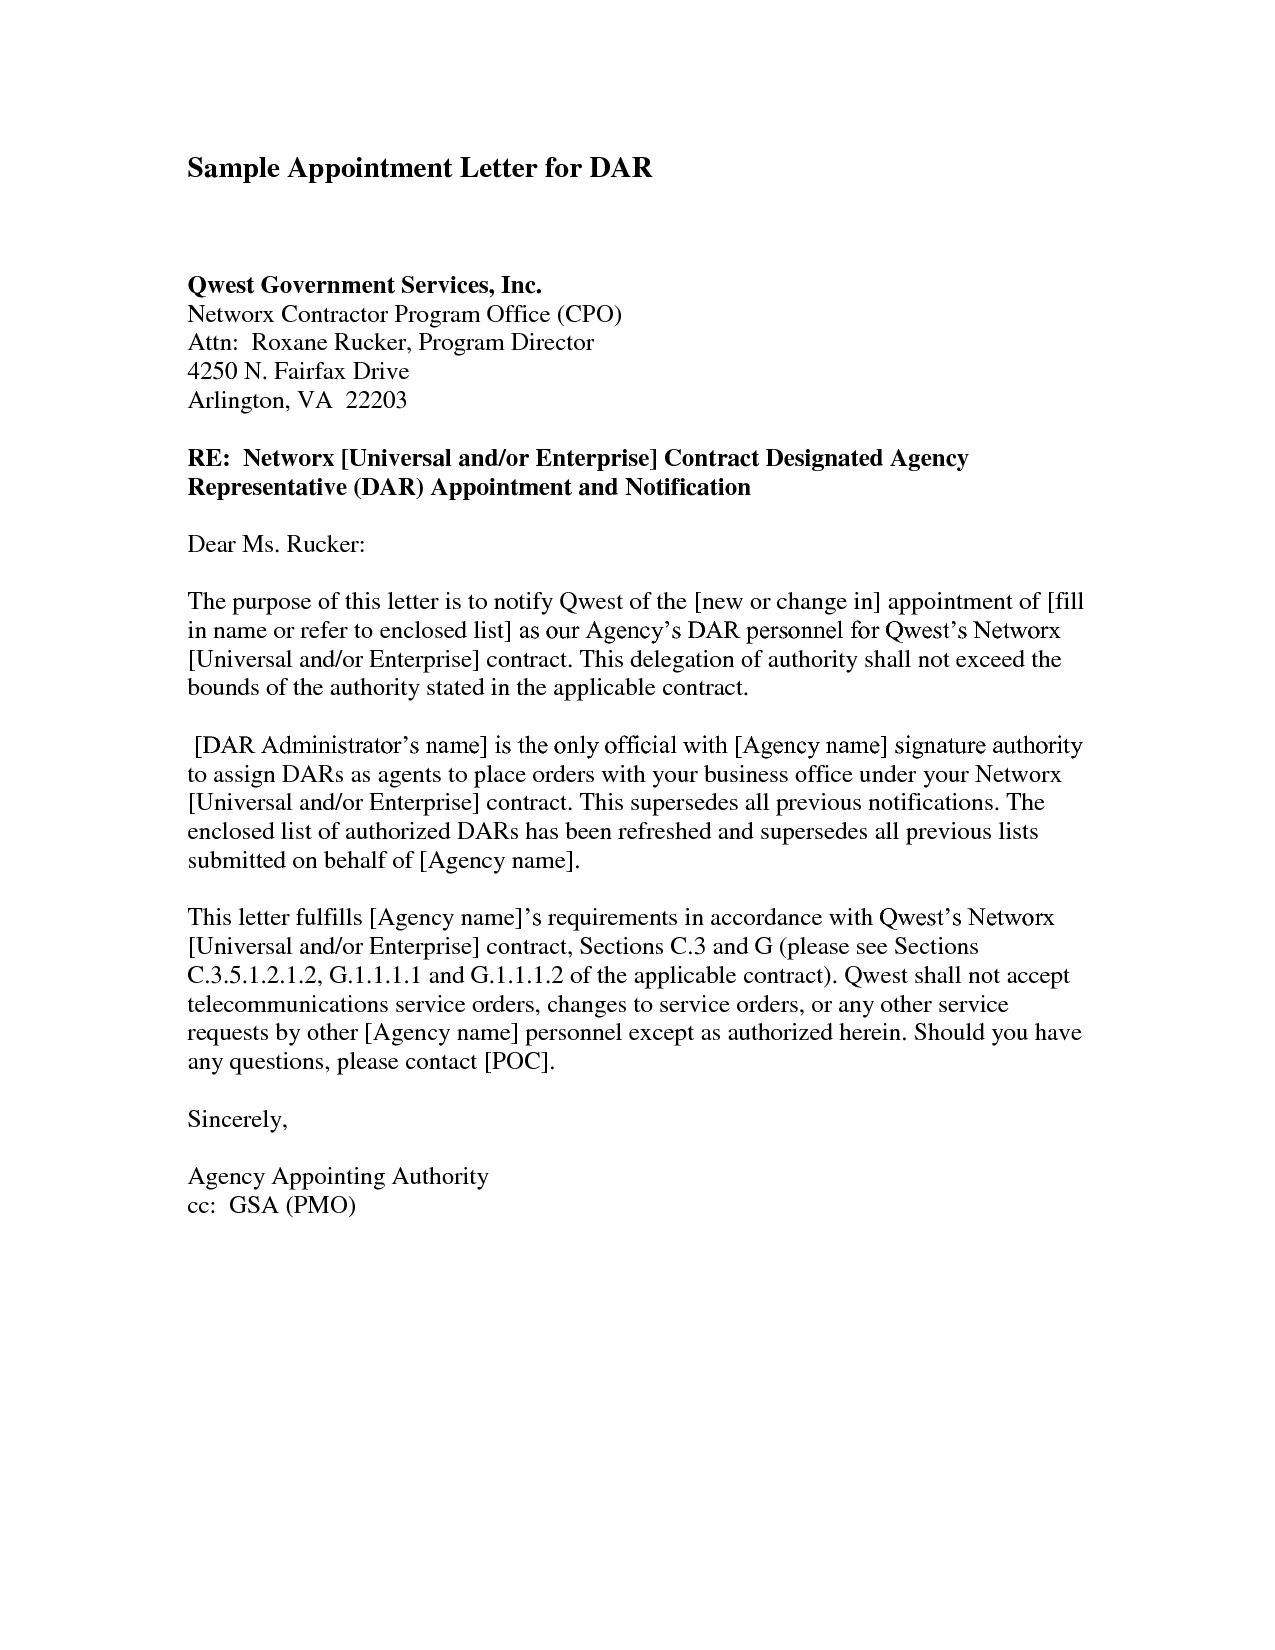 Rent Demand Letter Template - Trustee Appointment Letter Director Trustee is Appointed or